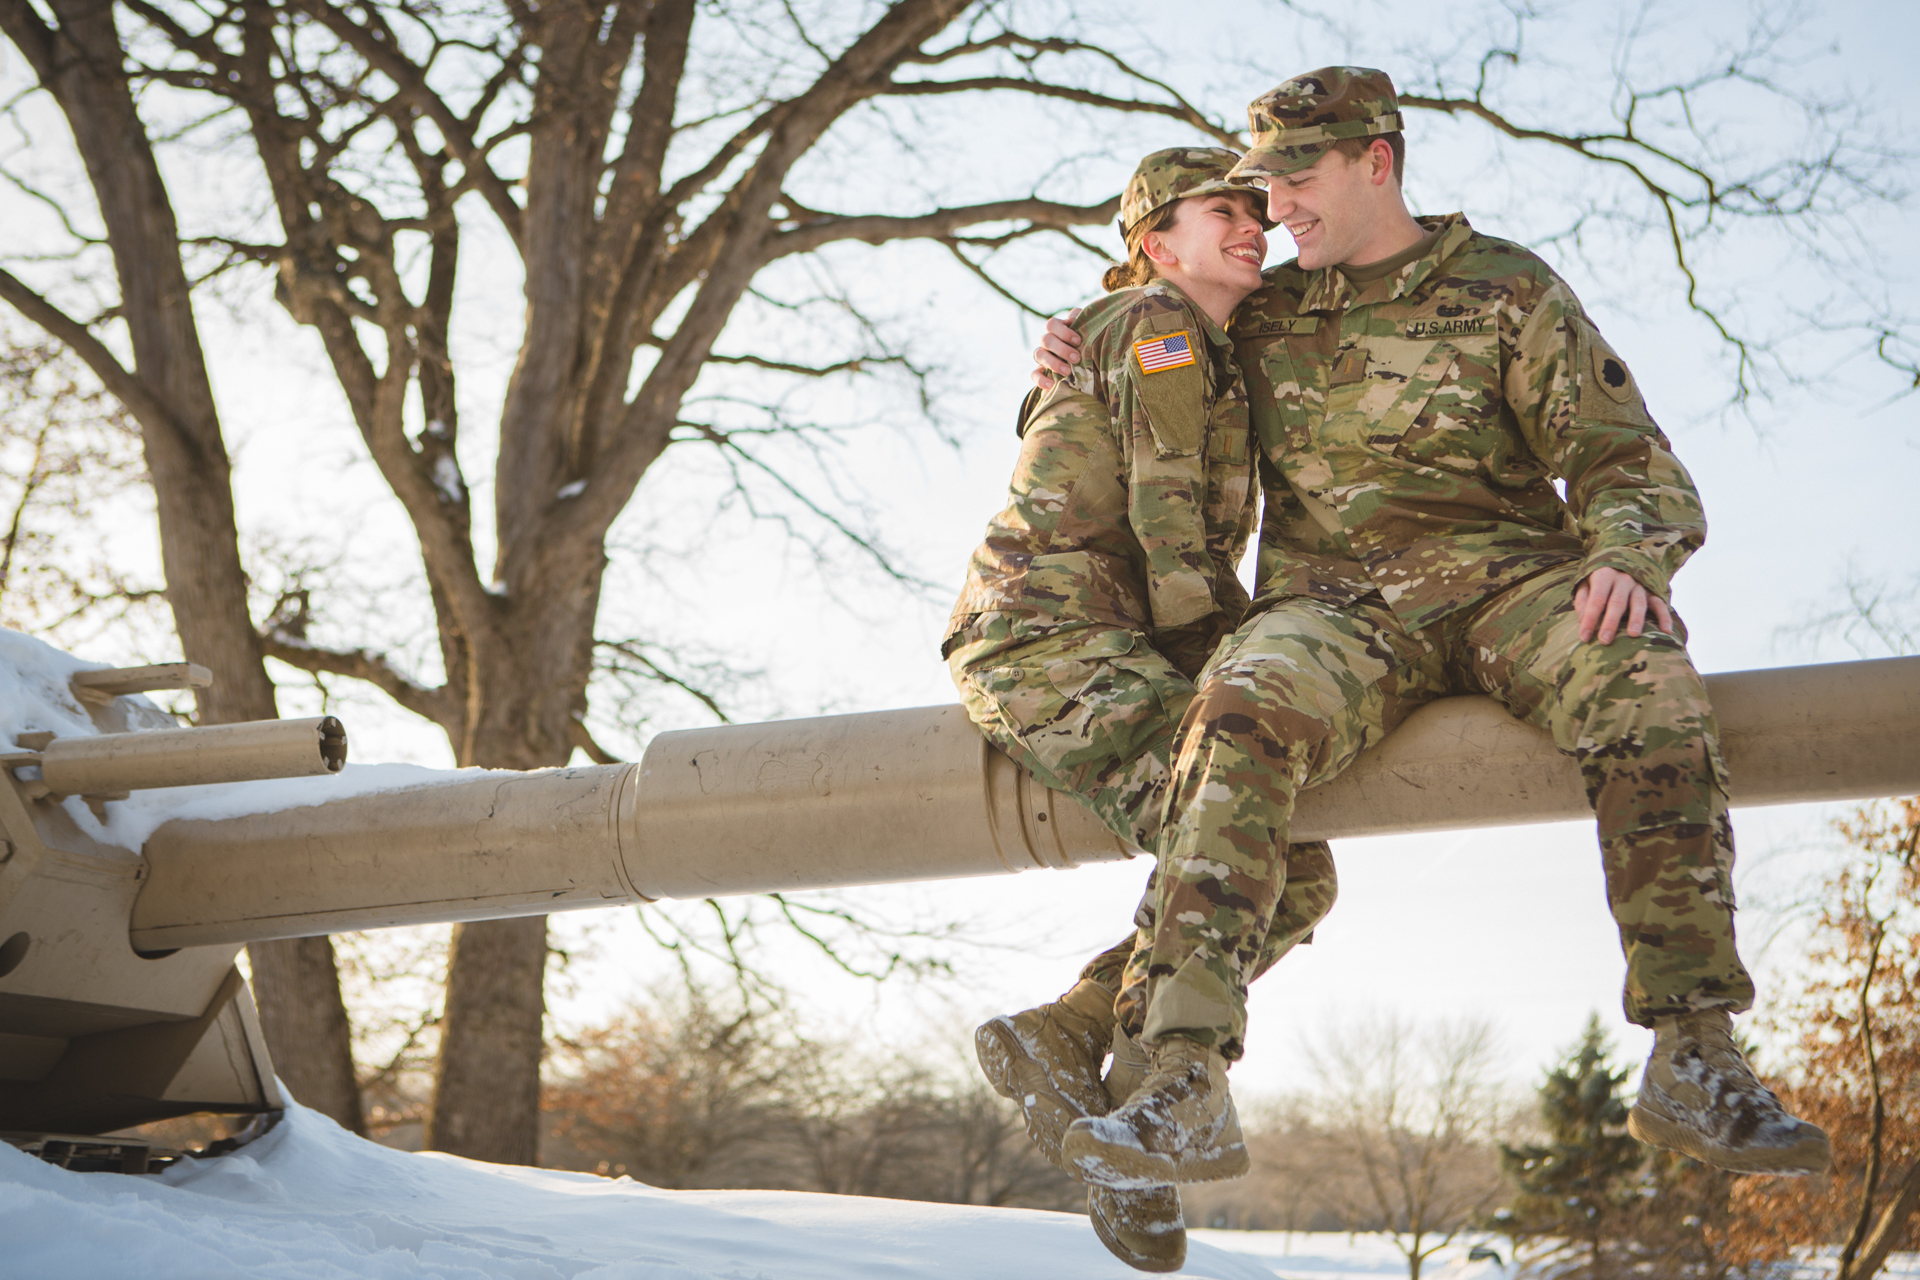 military engagement pictures cantigny wheaton illinois army national guard winter christmas snow batavia riverwalk riverfront-10.jpg